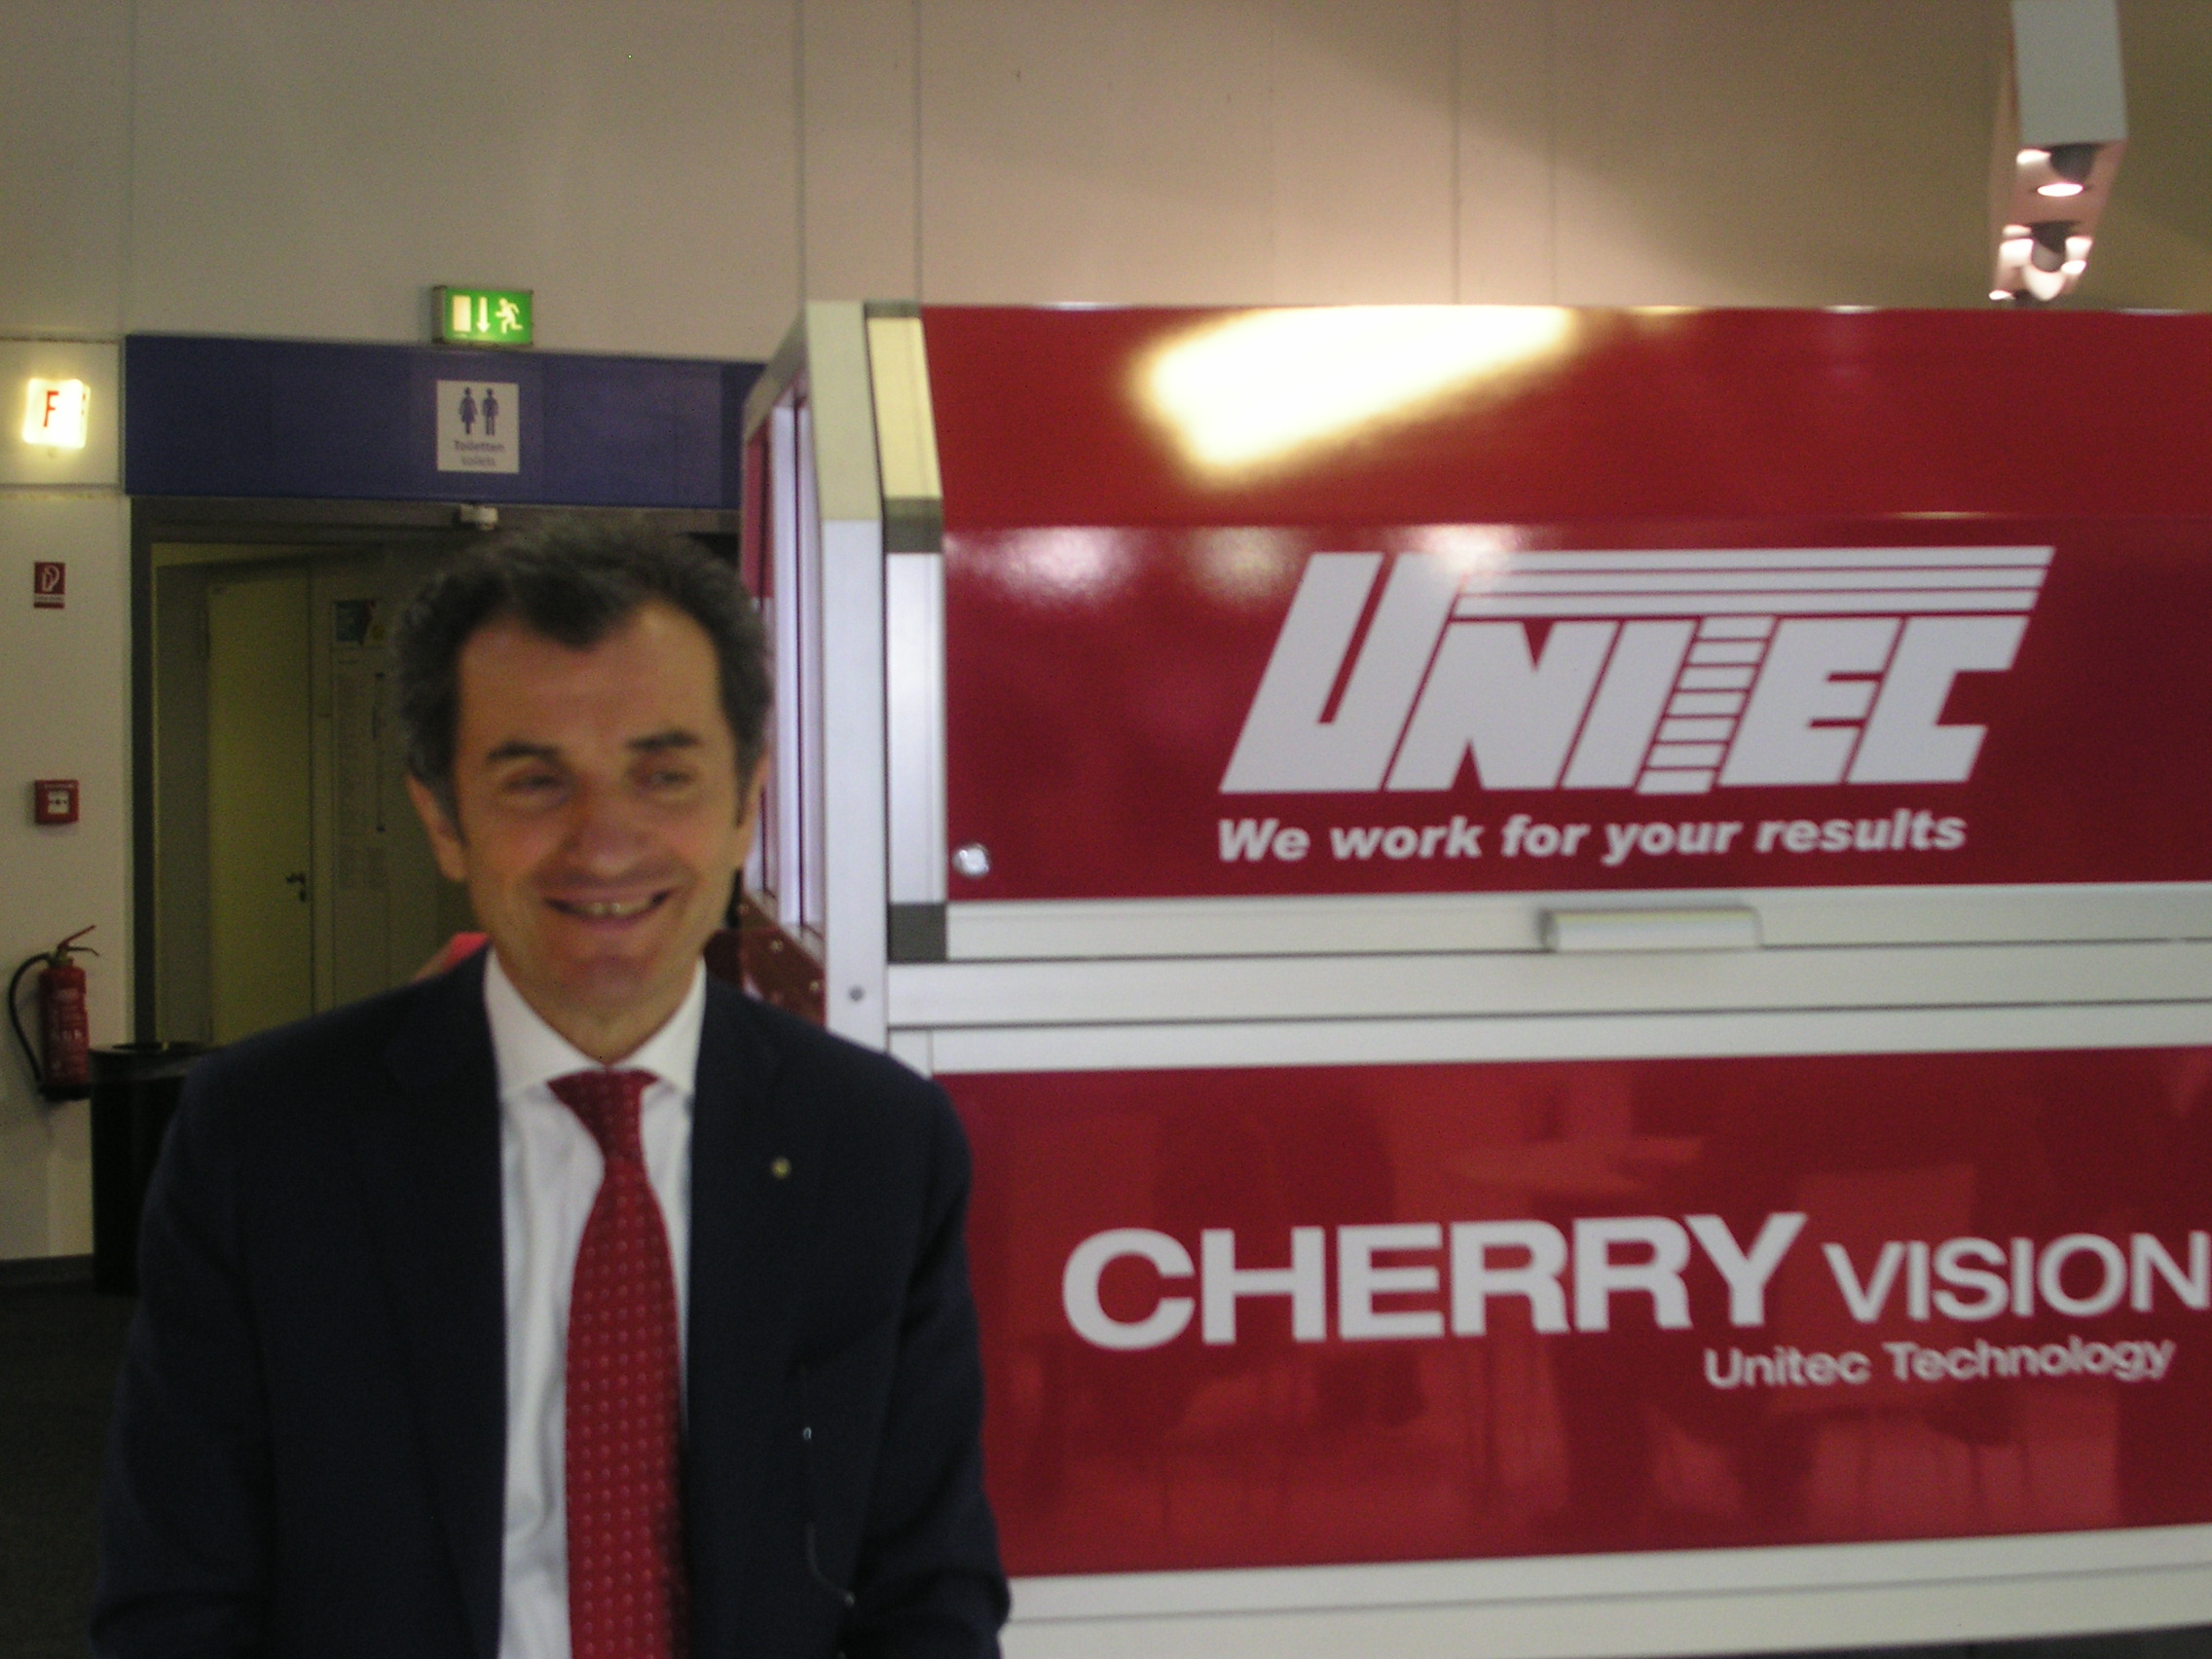 Unitec's quality sorting and grading systems (colour, shape, ripeness, degrees Brix, acidity, internal and external defects, etc.) guarantee a high level of accuracy and precision in fruit quality sorting.